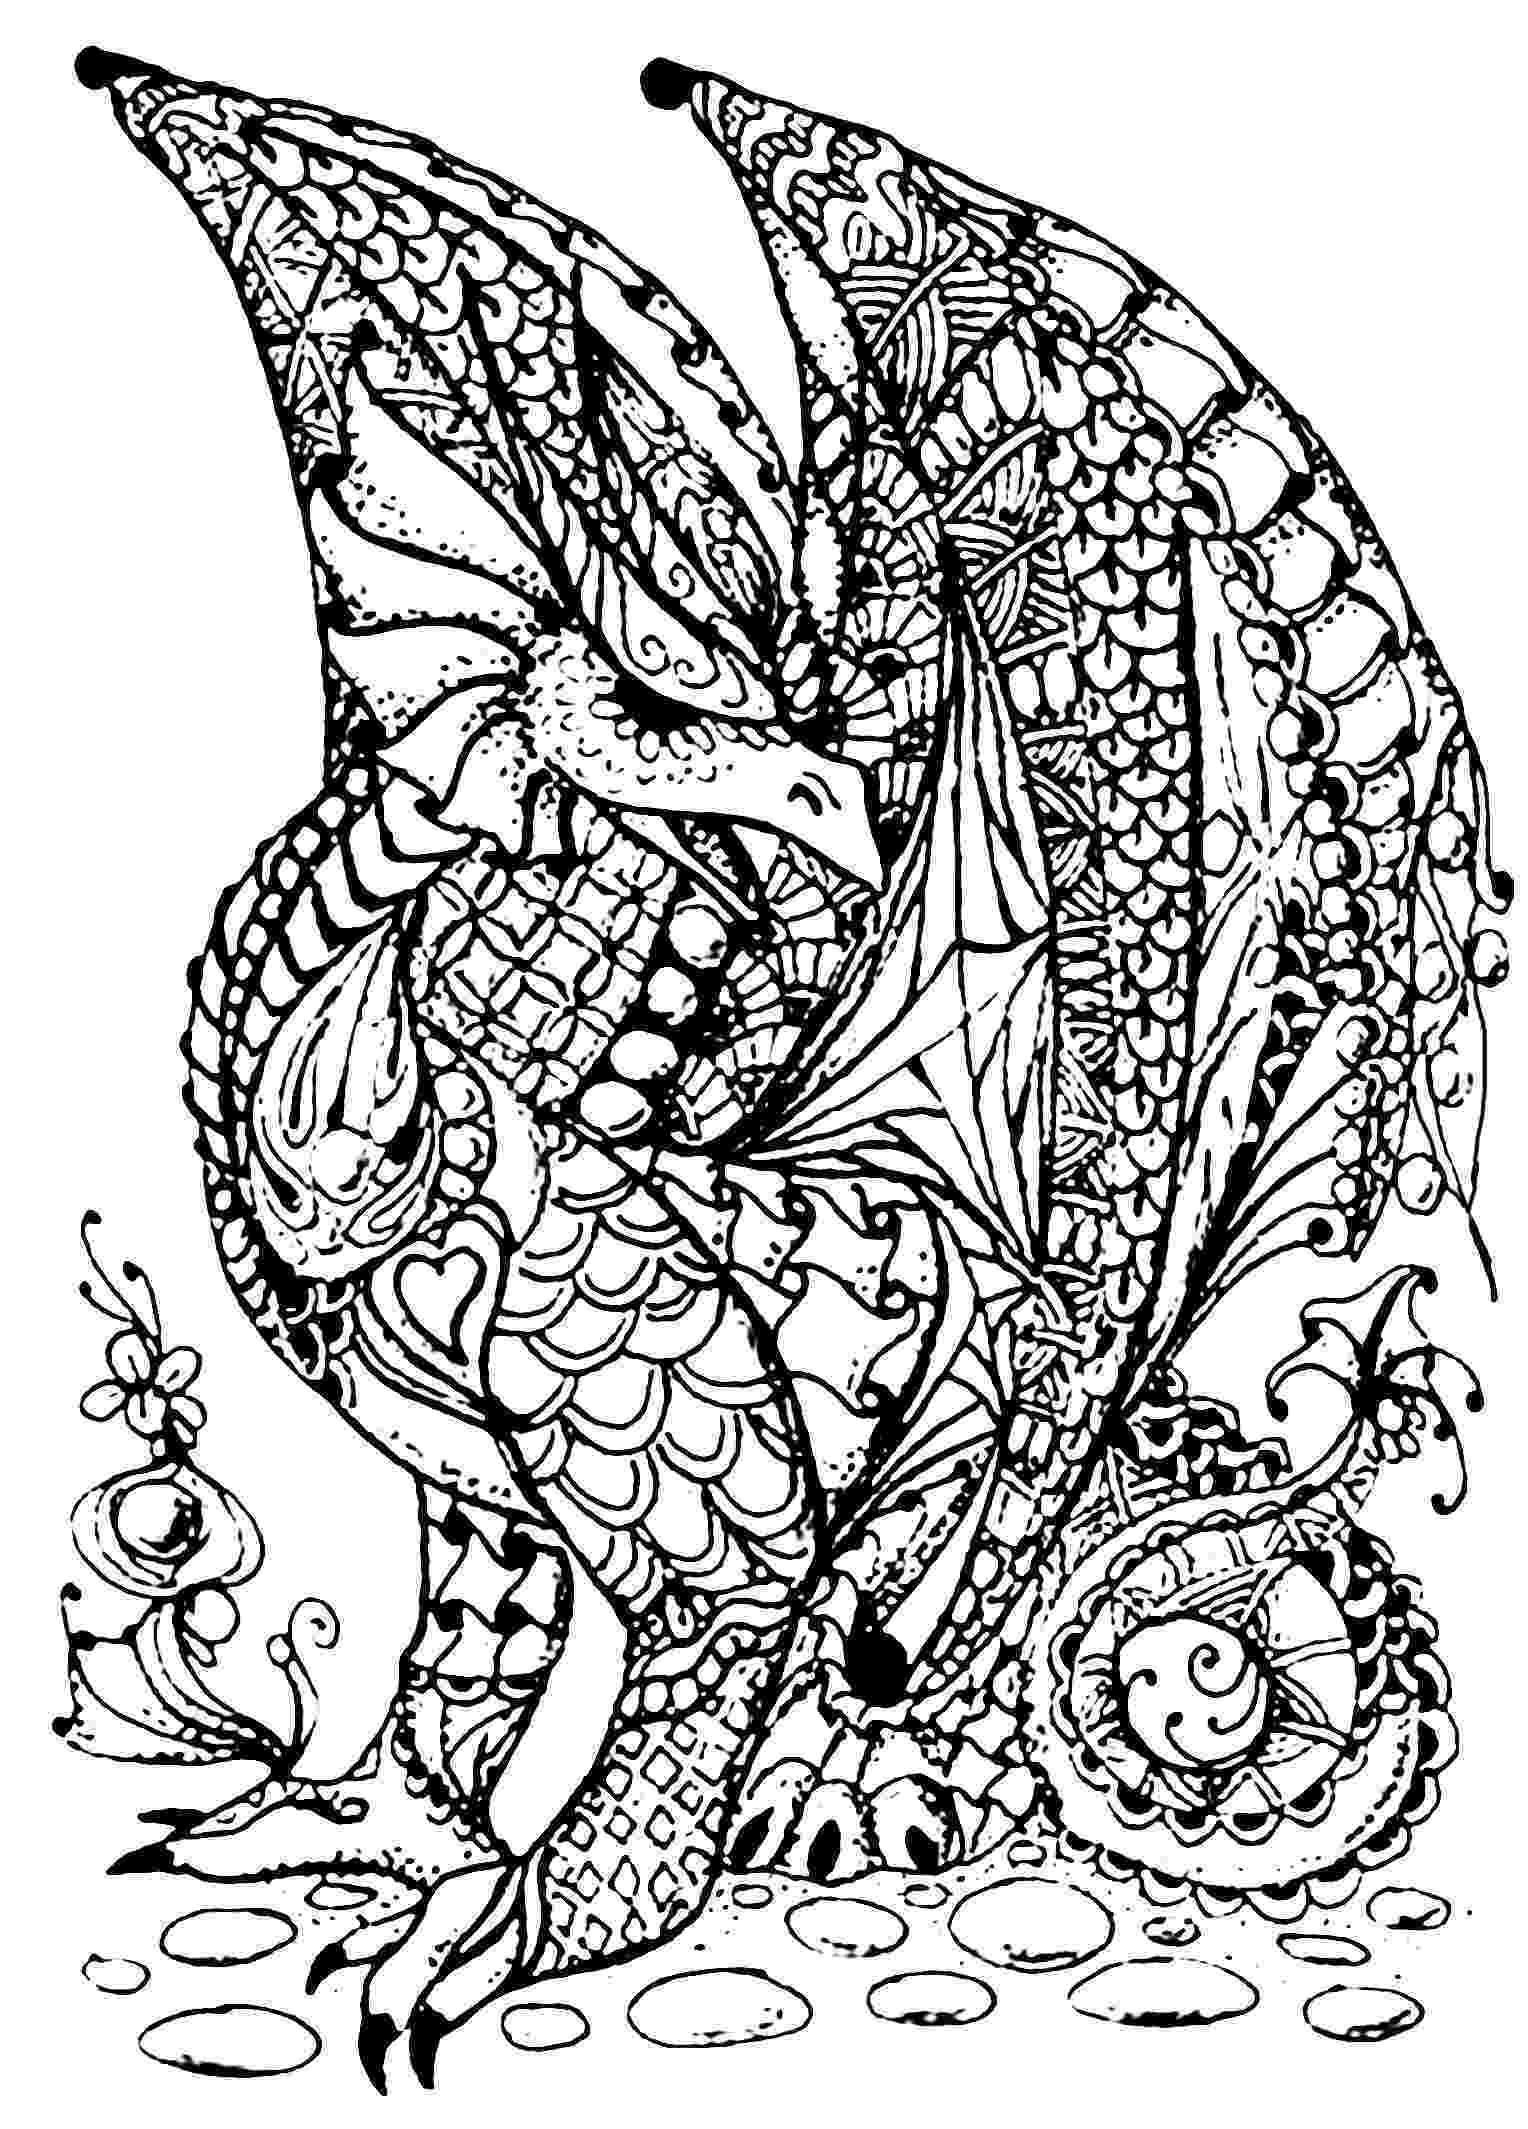 dragon coloring pages to print chinese dragon coloring pages to download and print for free pages print dragon to coloring